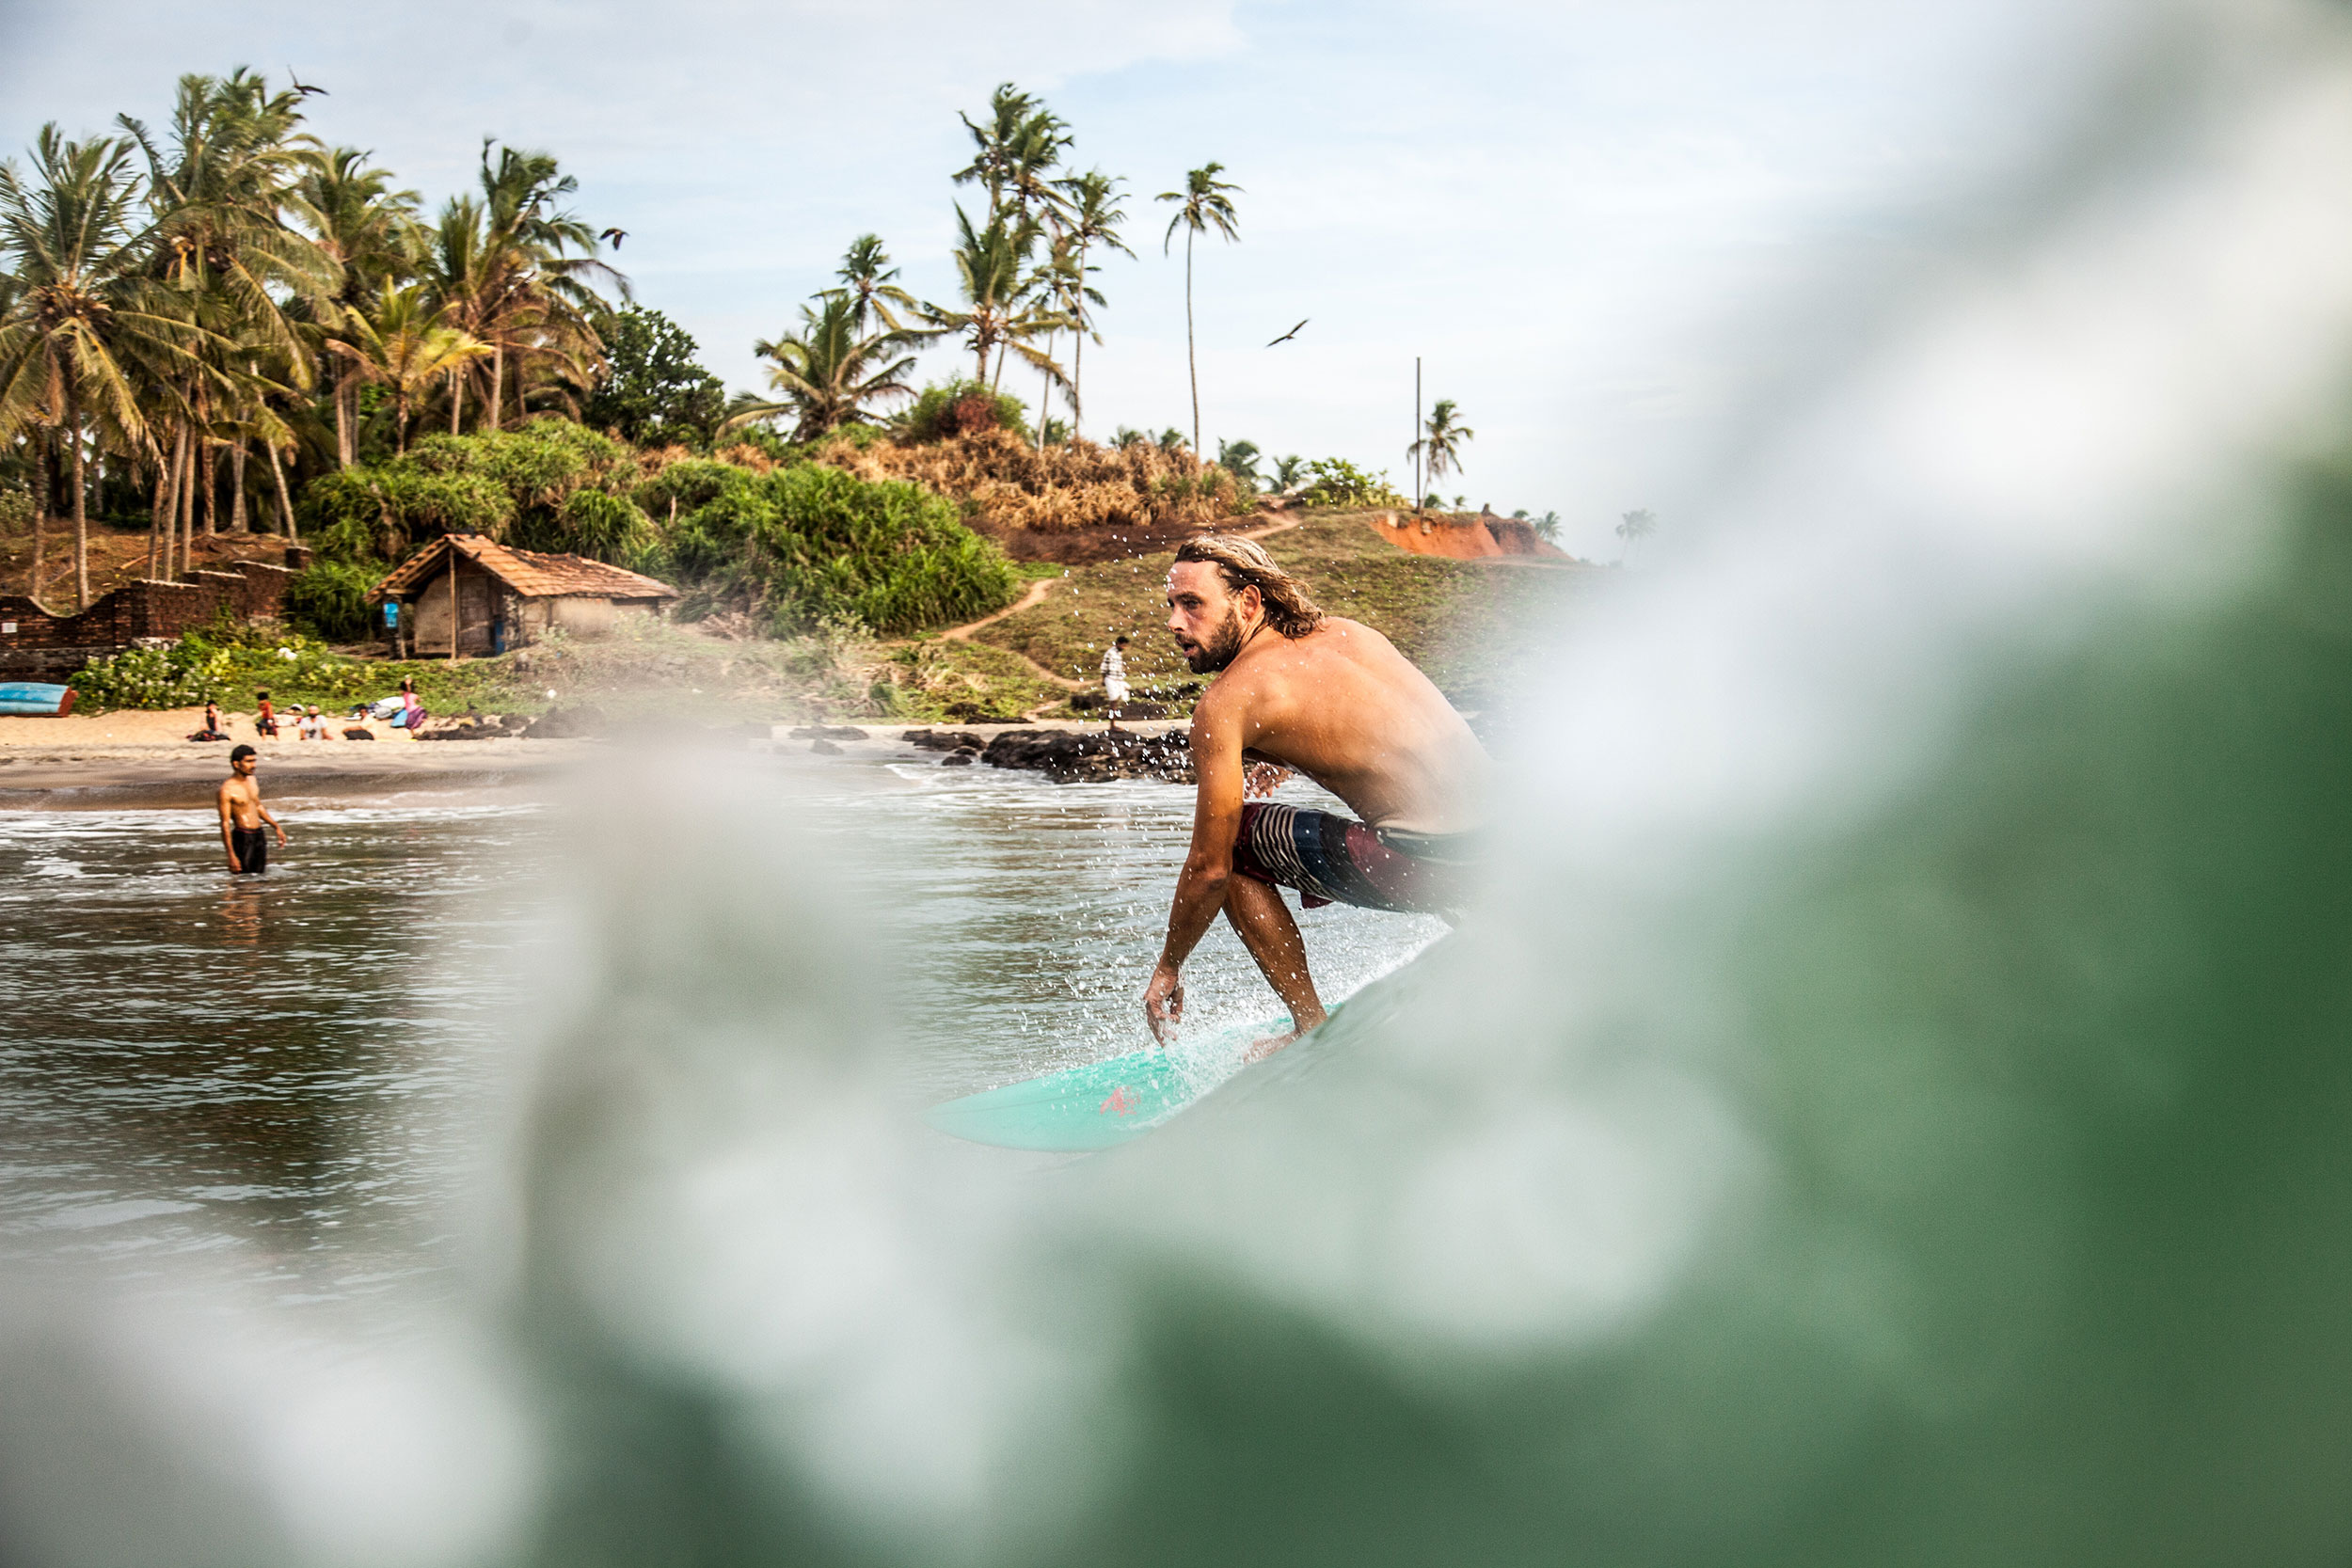 Joshua Stenning, from England is one of the founders of the Sunday Surf Club in Kerala, where young Indians are taught how to surf. PHOTO: Berta Tilmante